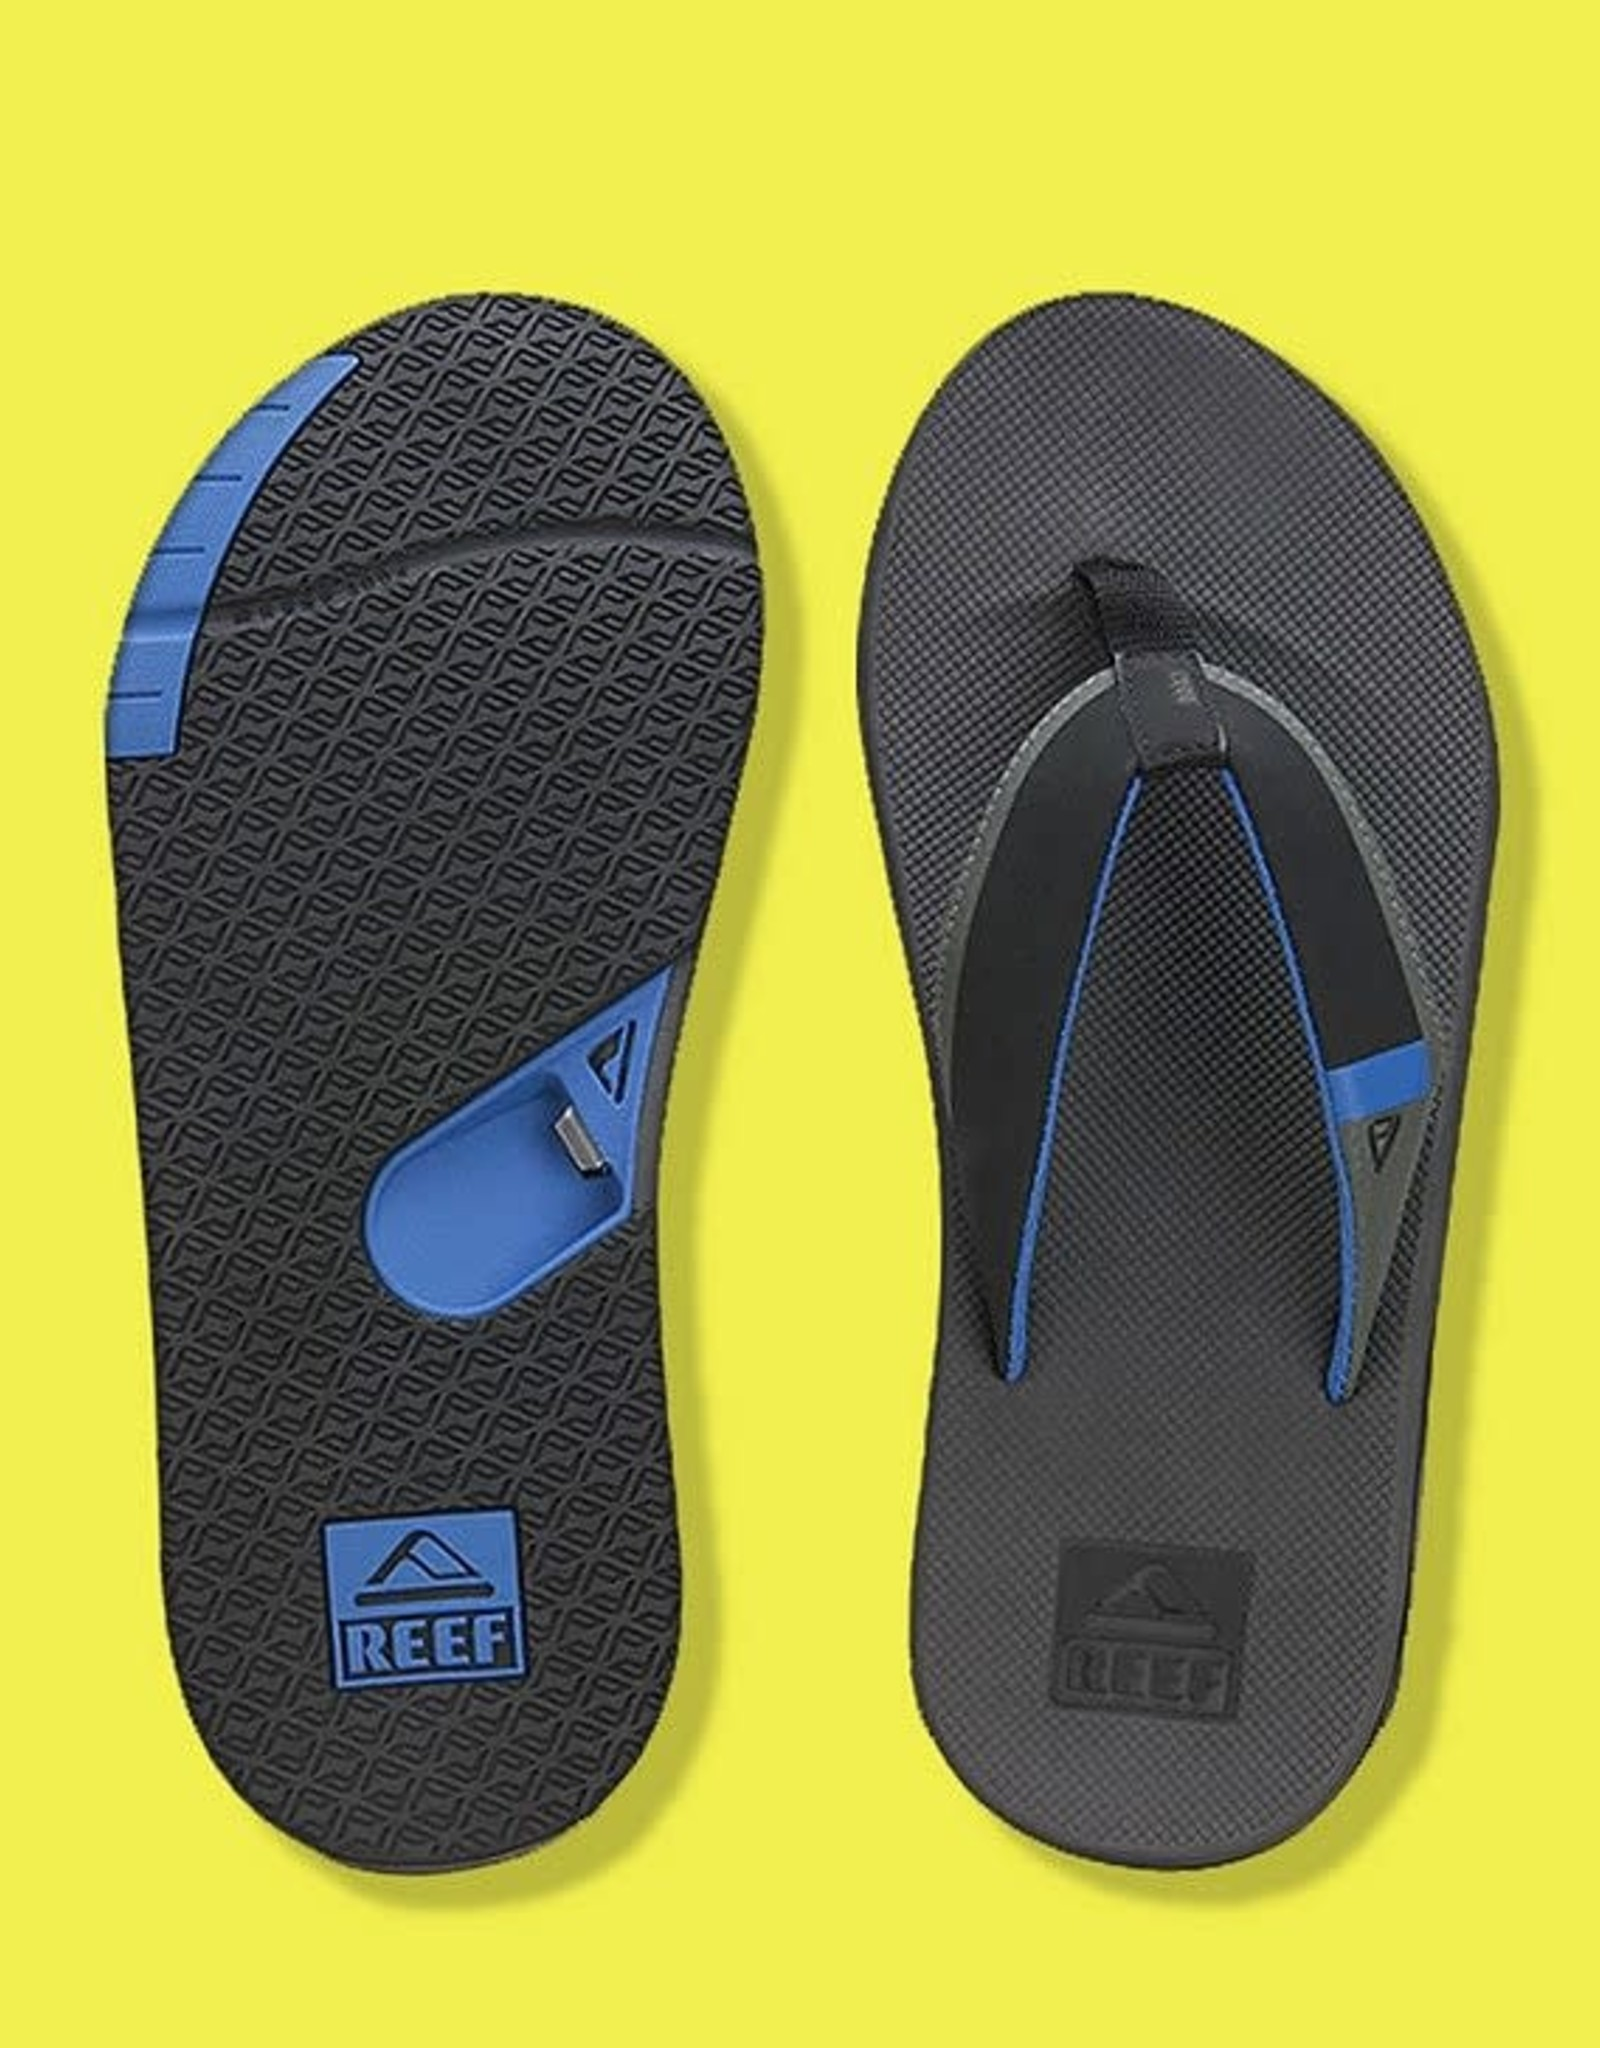 Reef REEF - FANNING - Aqua/Yellow